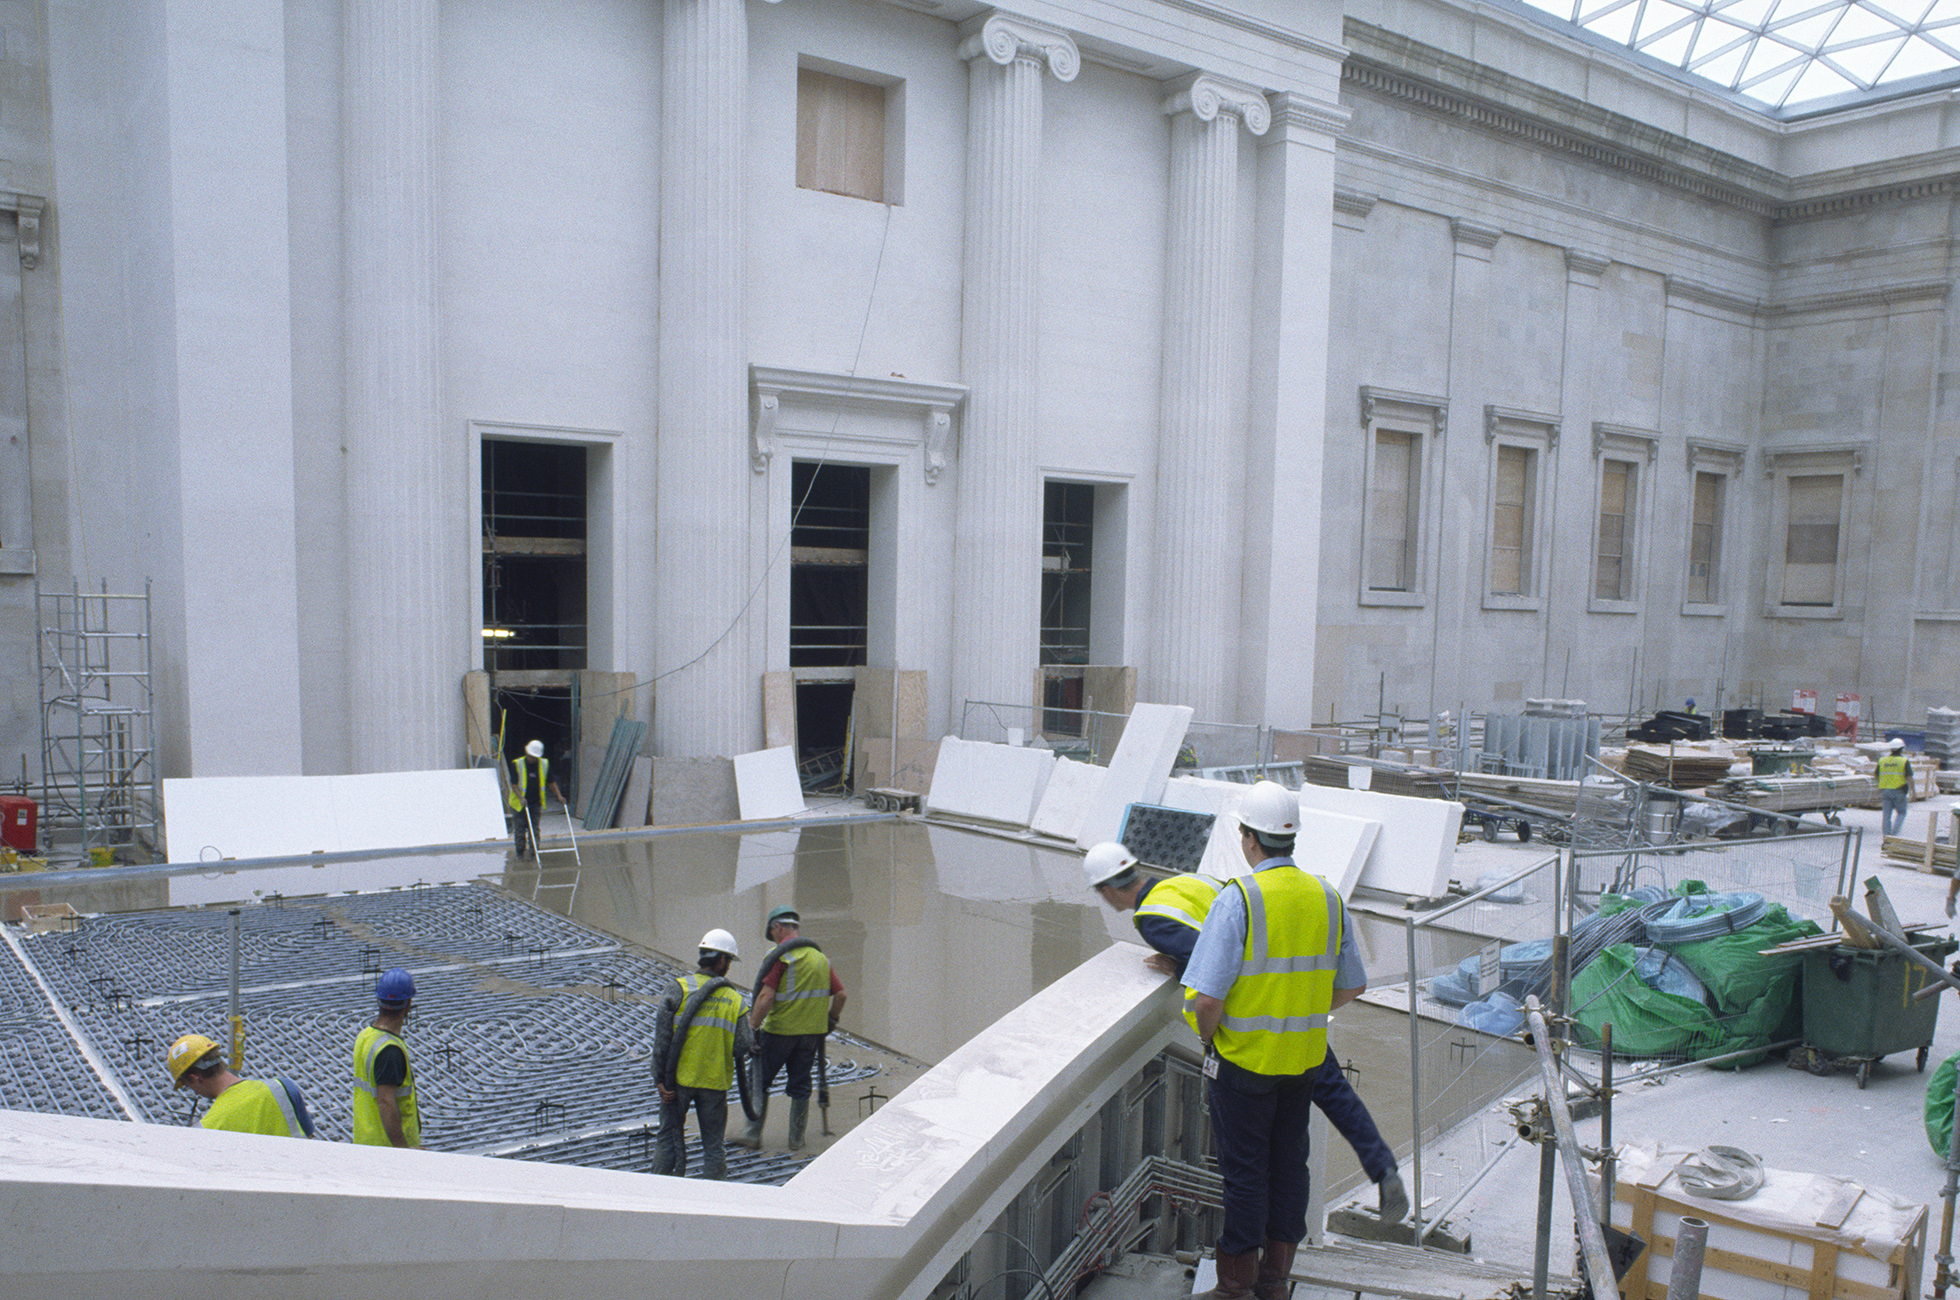 Builders wearing high-vis vests stand on the steps around the Great Court, as the flooring is prepared,  concrete is being levels, and white slabs of limestone sit waiting to be laid.